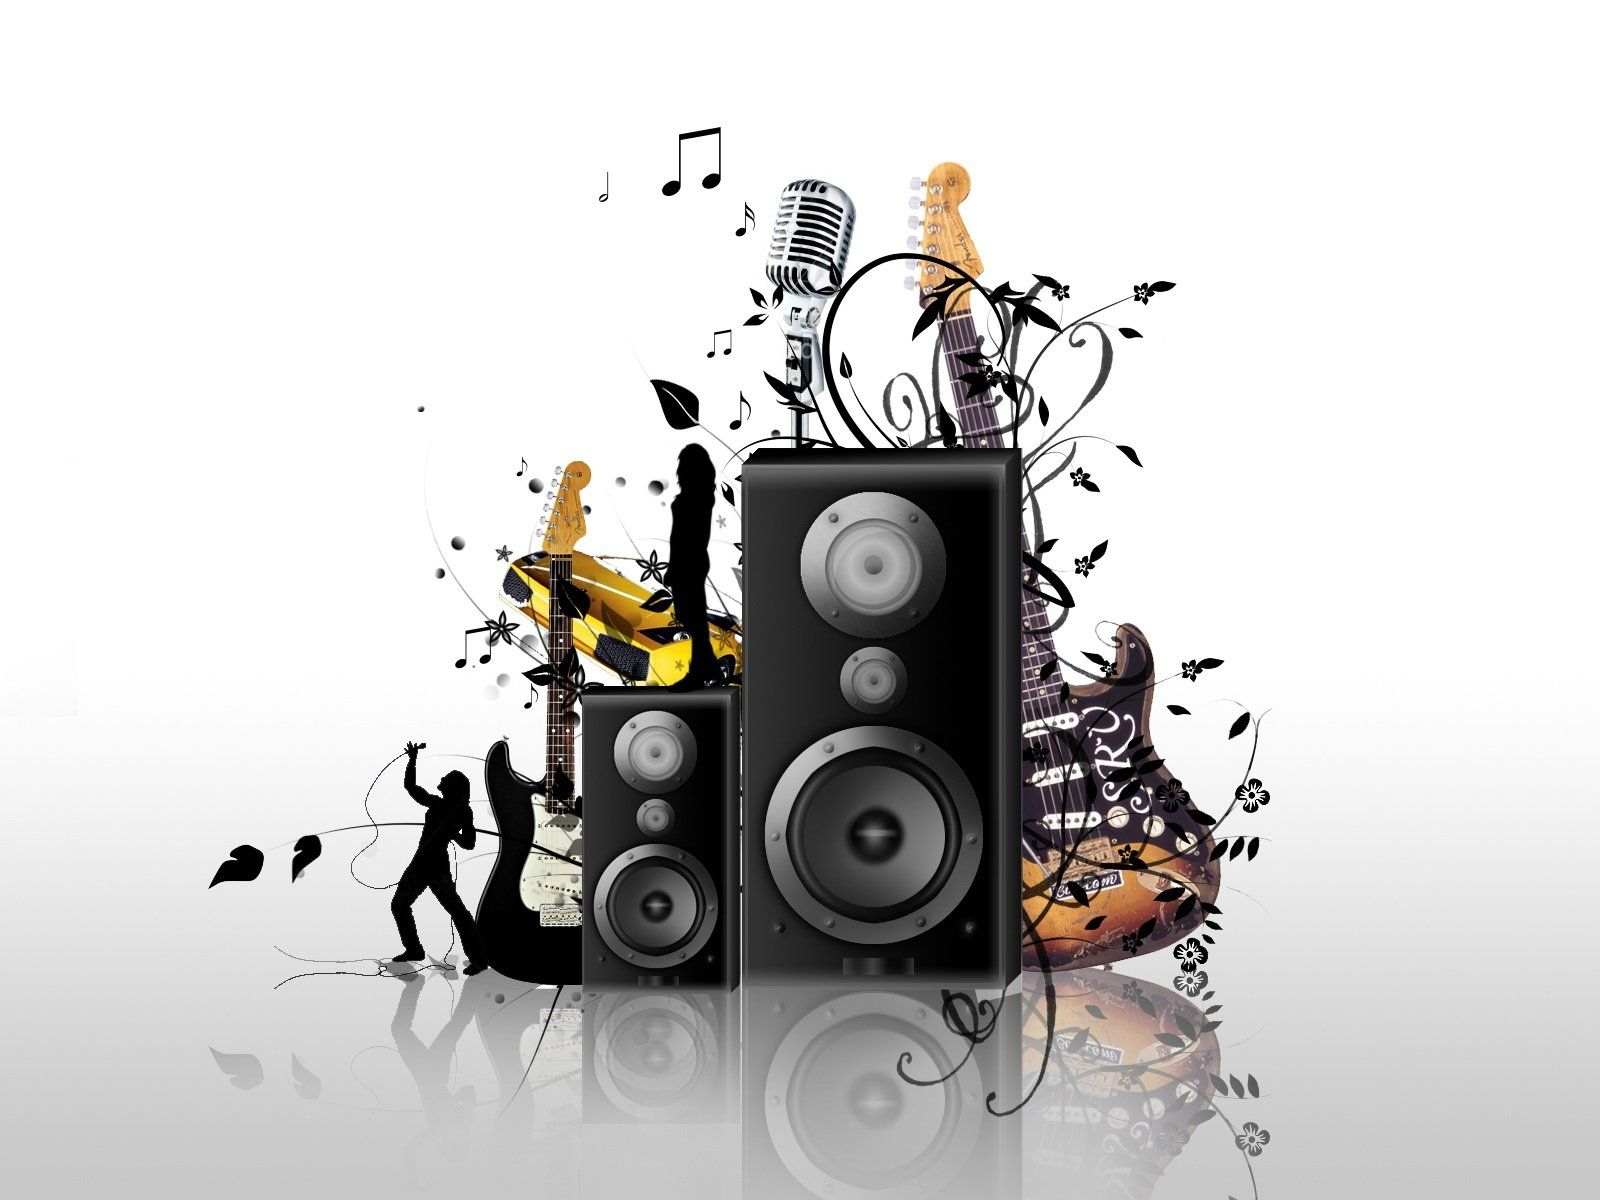 cool background music mp3 HD.